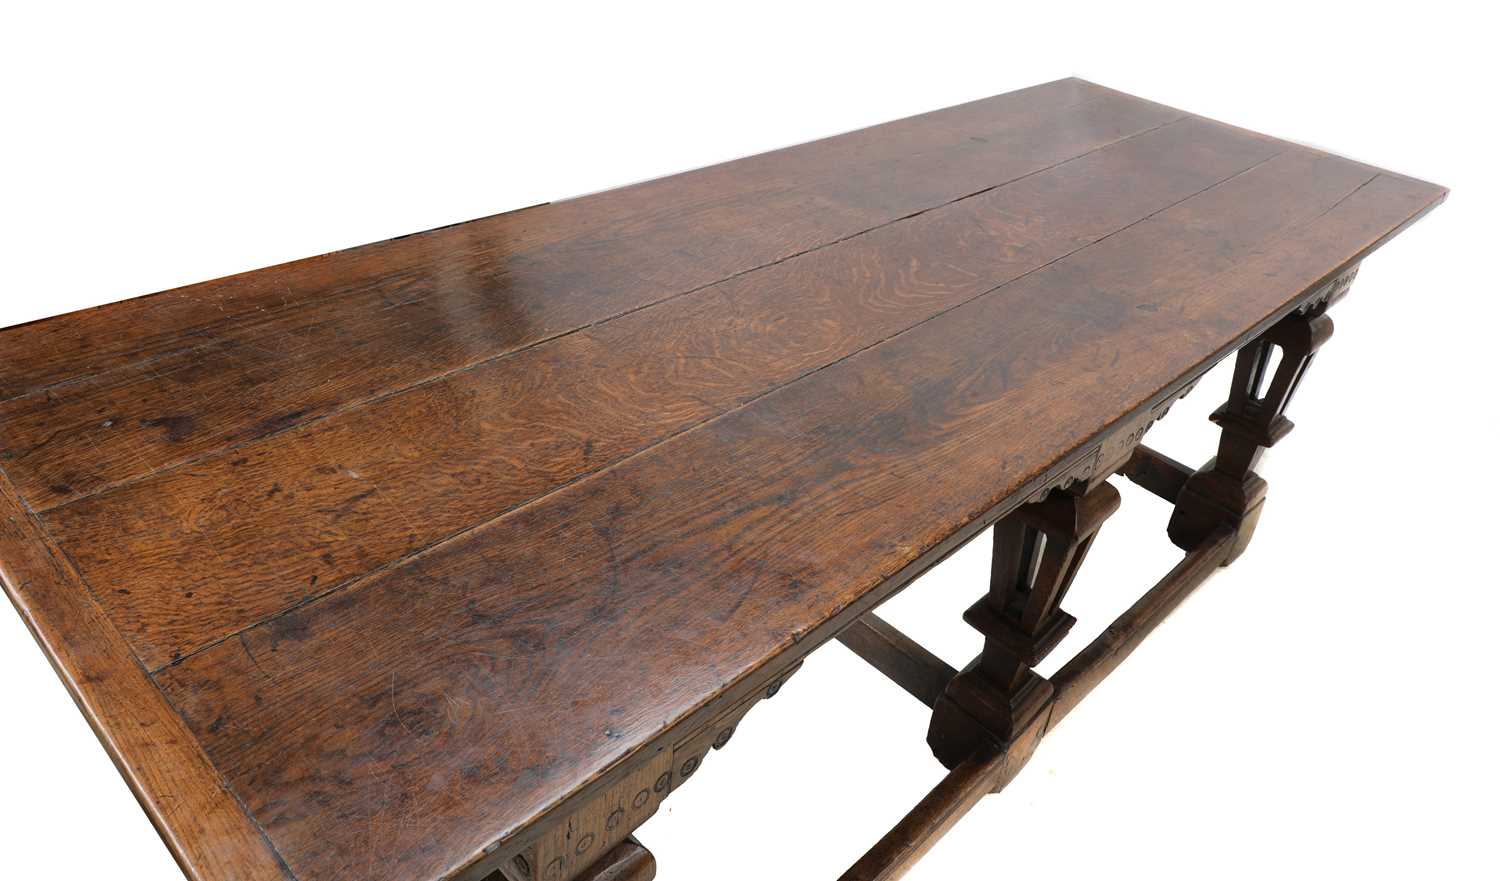 A Jacobean style oak refectory table, - Image 4 of 8